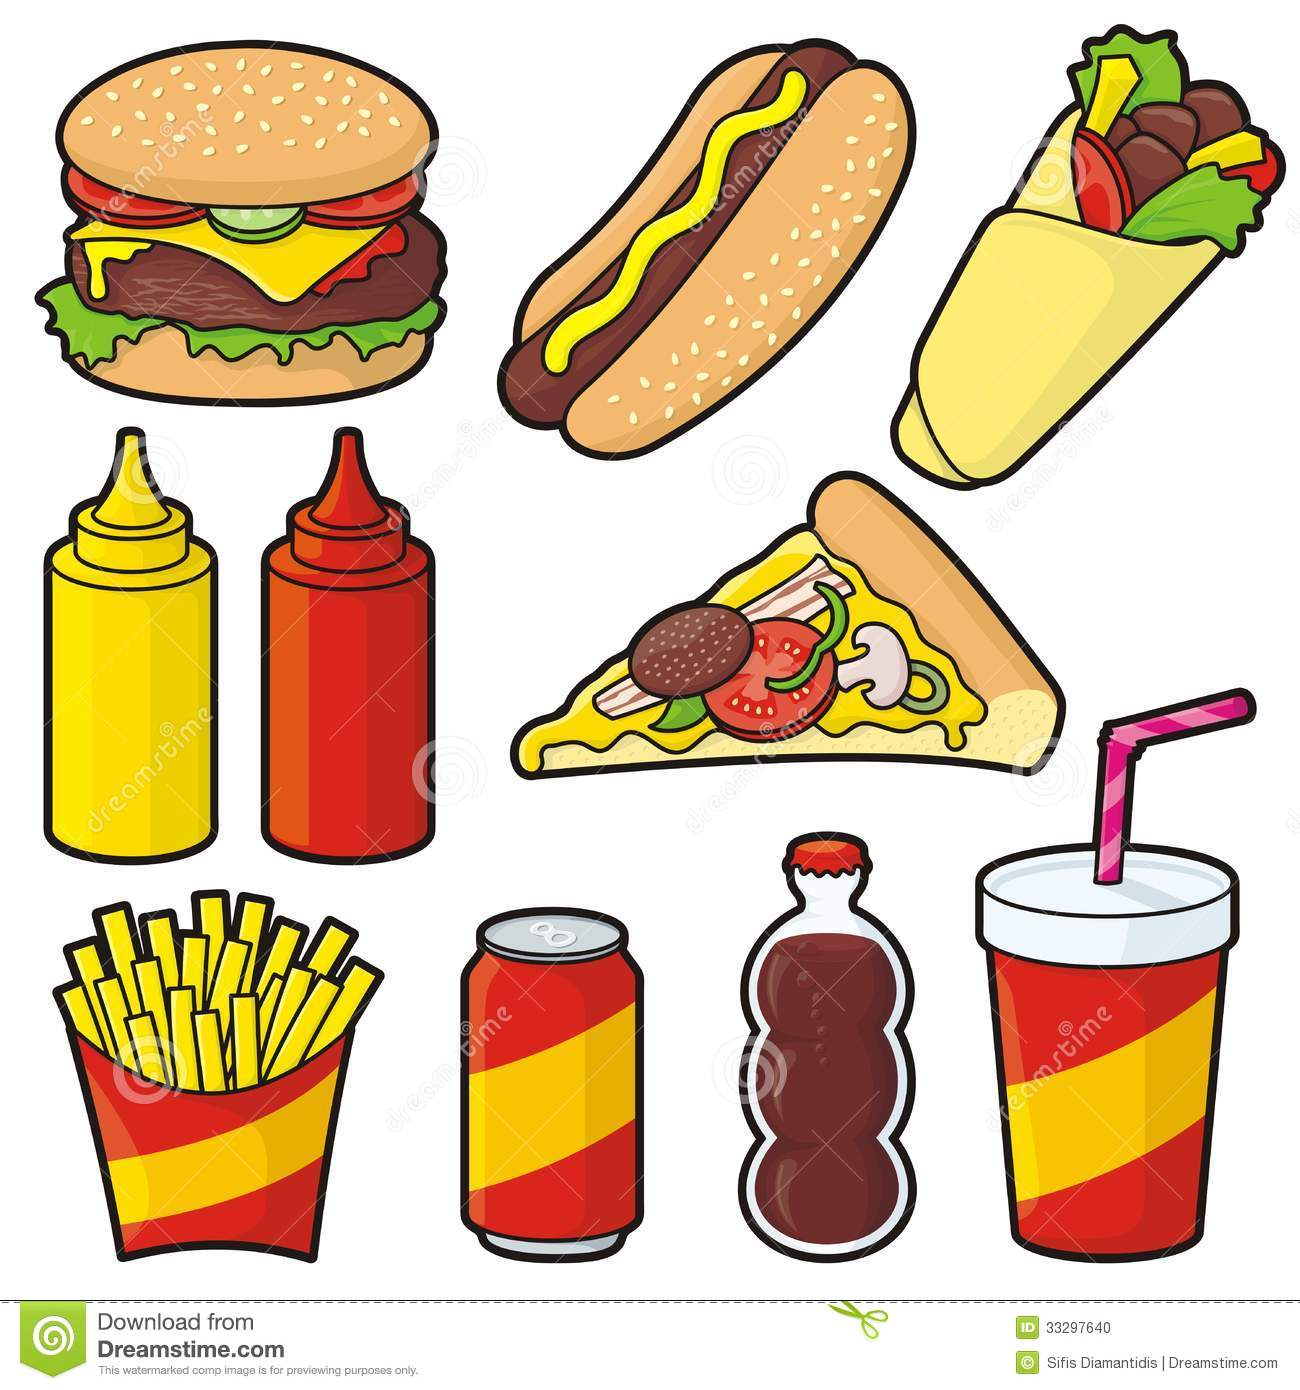 McDonald's clipart food Food Clipart Collection  Clipart